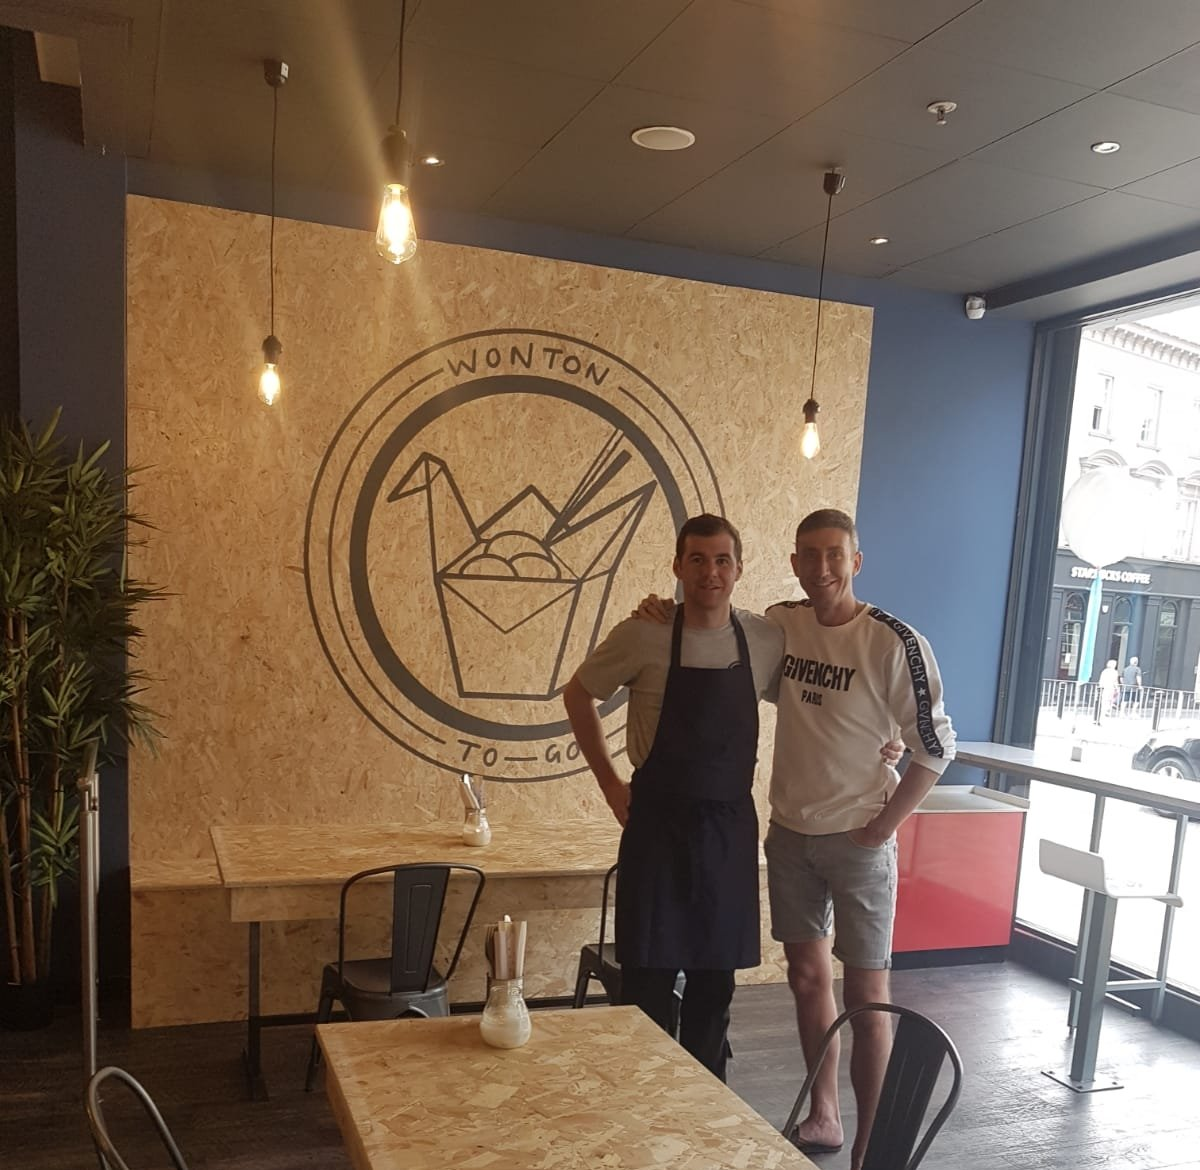 Went 2 town 1st time in ages,went this NEW place called Wonton To Go,concept is, food u order all £ goes to @Holiday_Hunger charity helps feed kids who families can't afford to feed them. It's win win, have BOSS food & u do ur bit 2 help charity at the same time  @westbrookdanni https://t.co/yPQqCPfn09